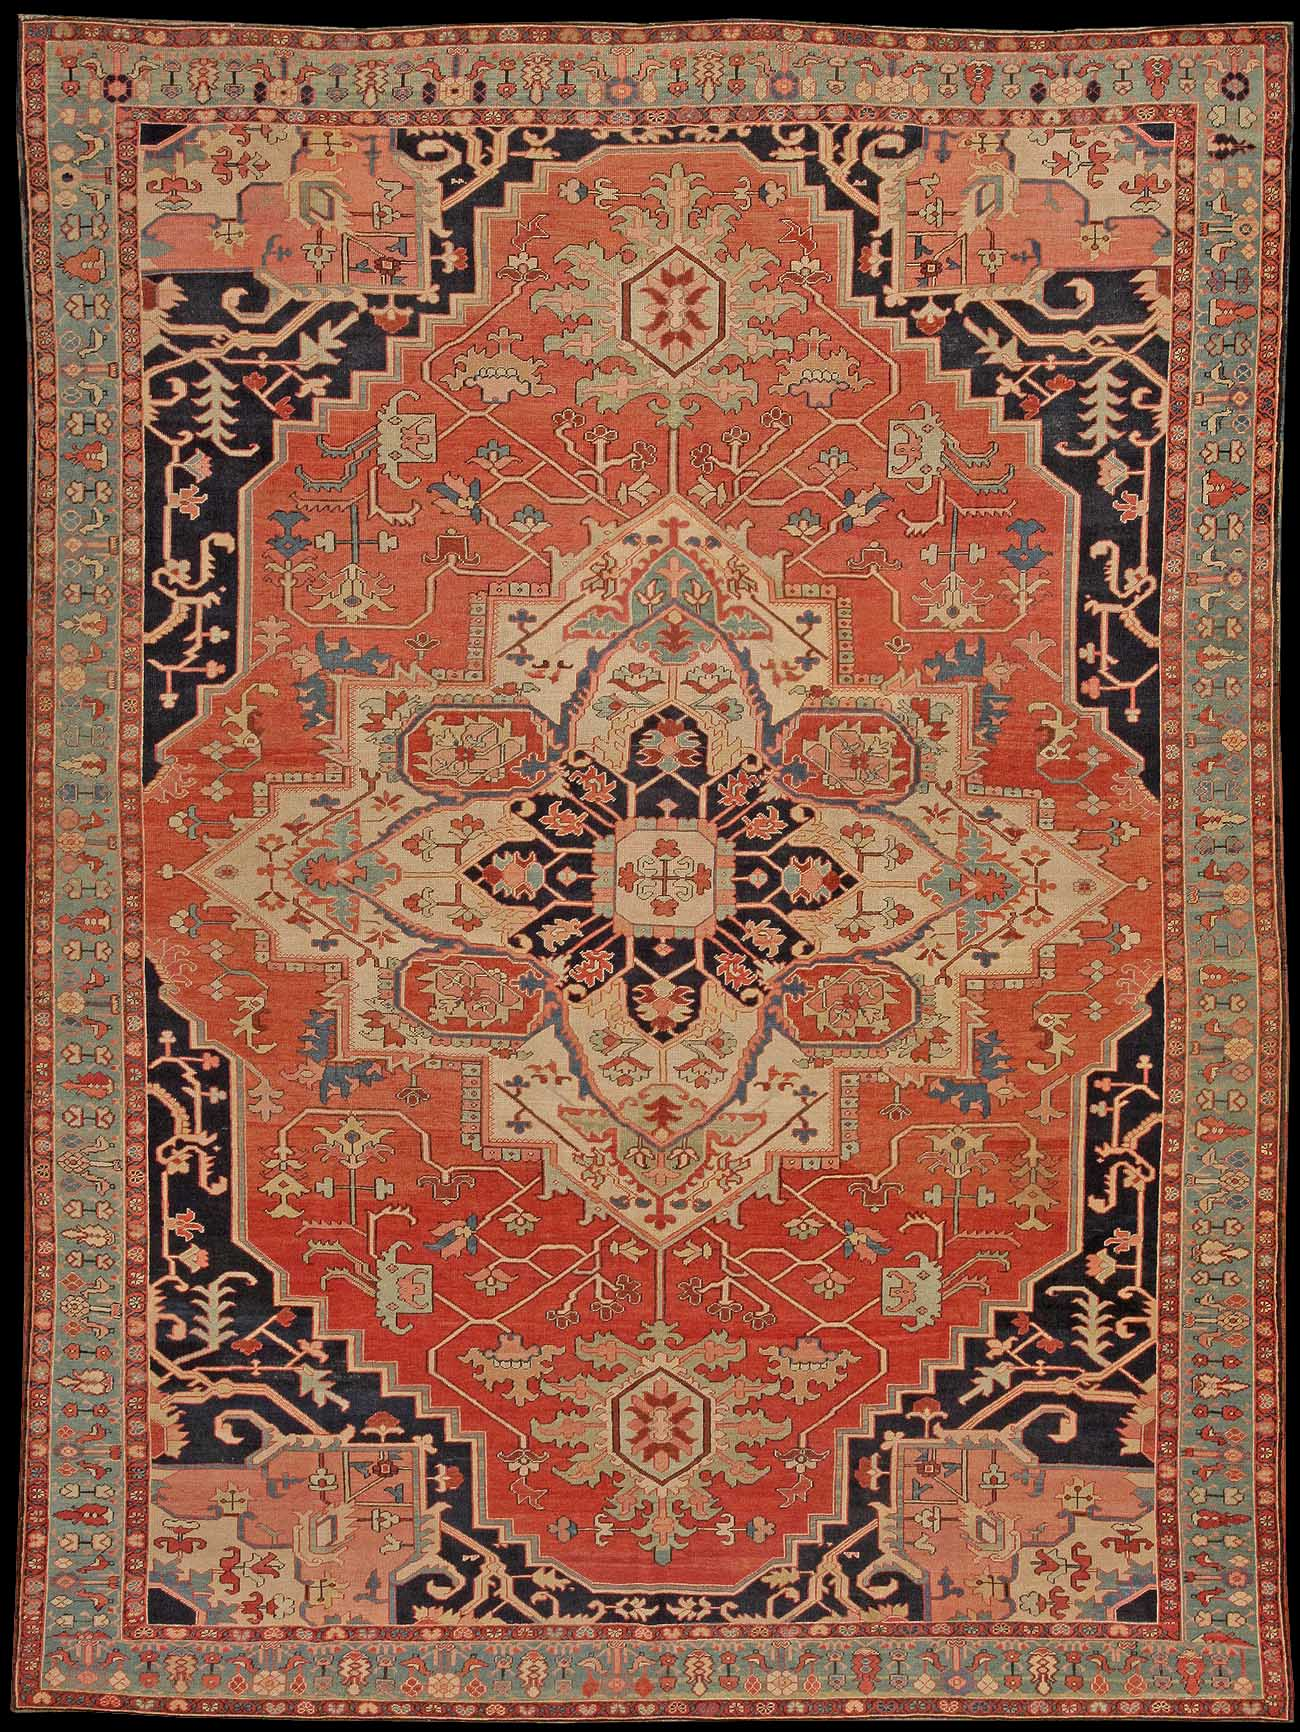 Serapi Carpets Here We See A Relatively Narrow Main Border With An Unusual Design Of Shrubs Or Small Trees All These Qualities Converge To Distinguish